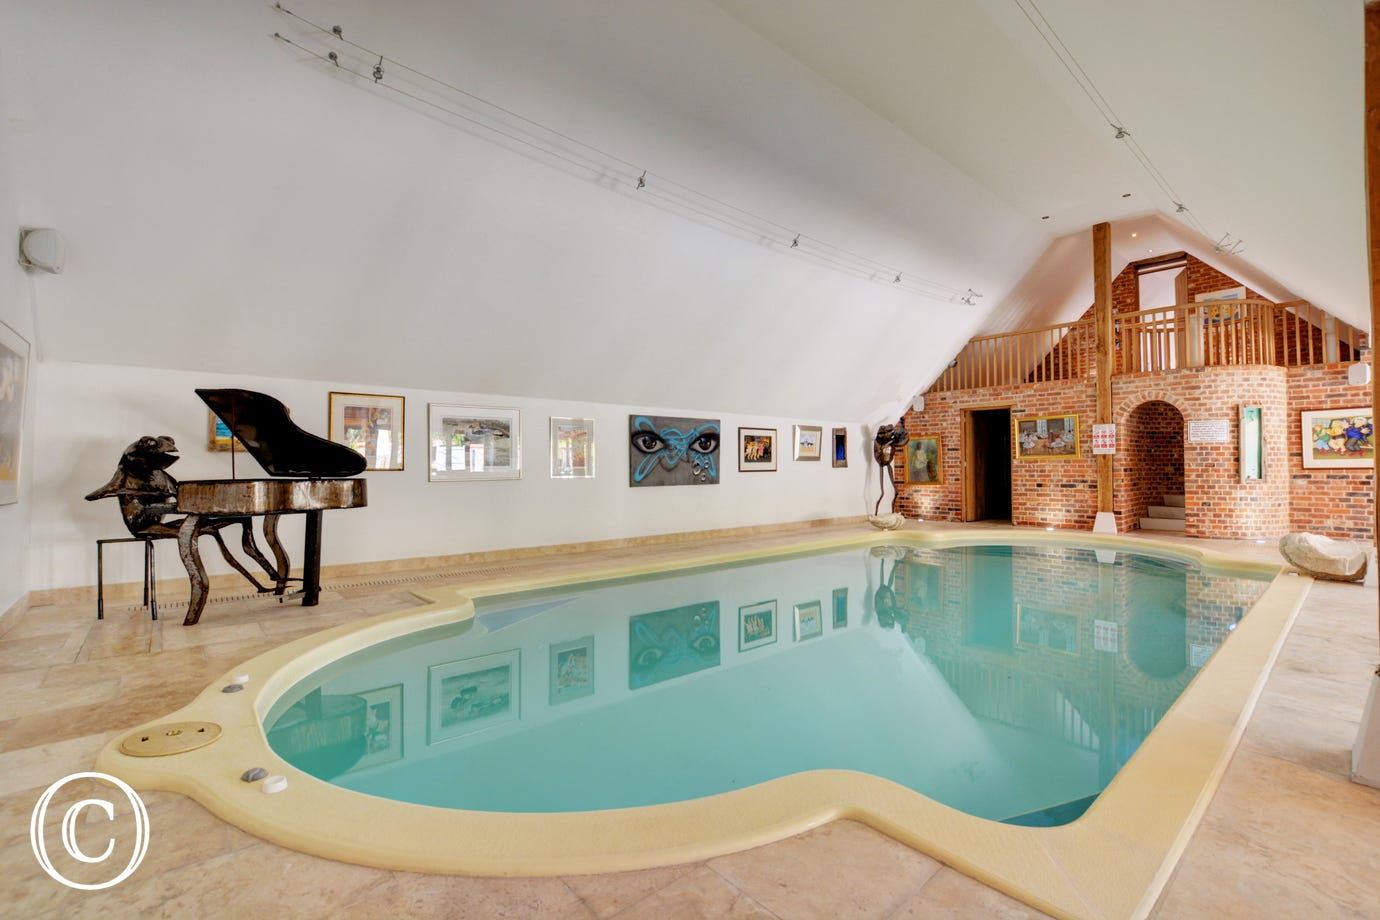 The property has the added luxury of this shared indoor pool